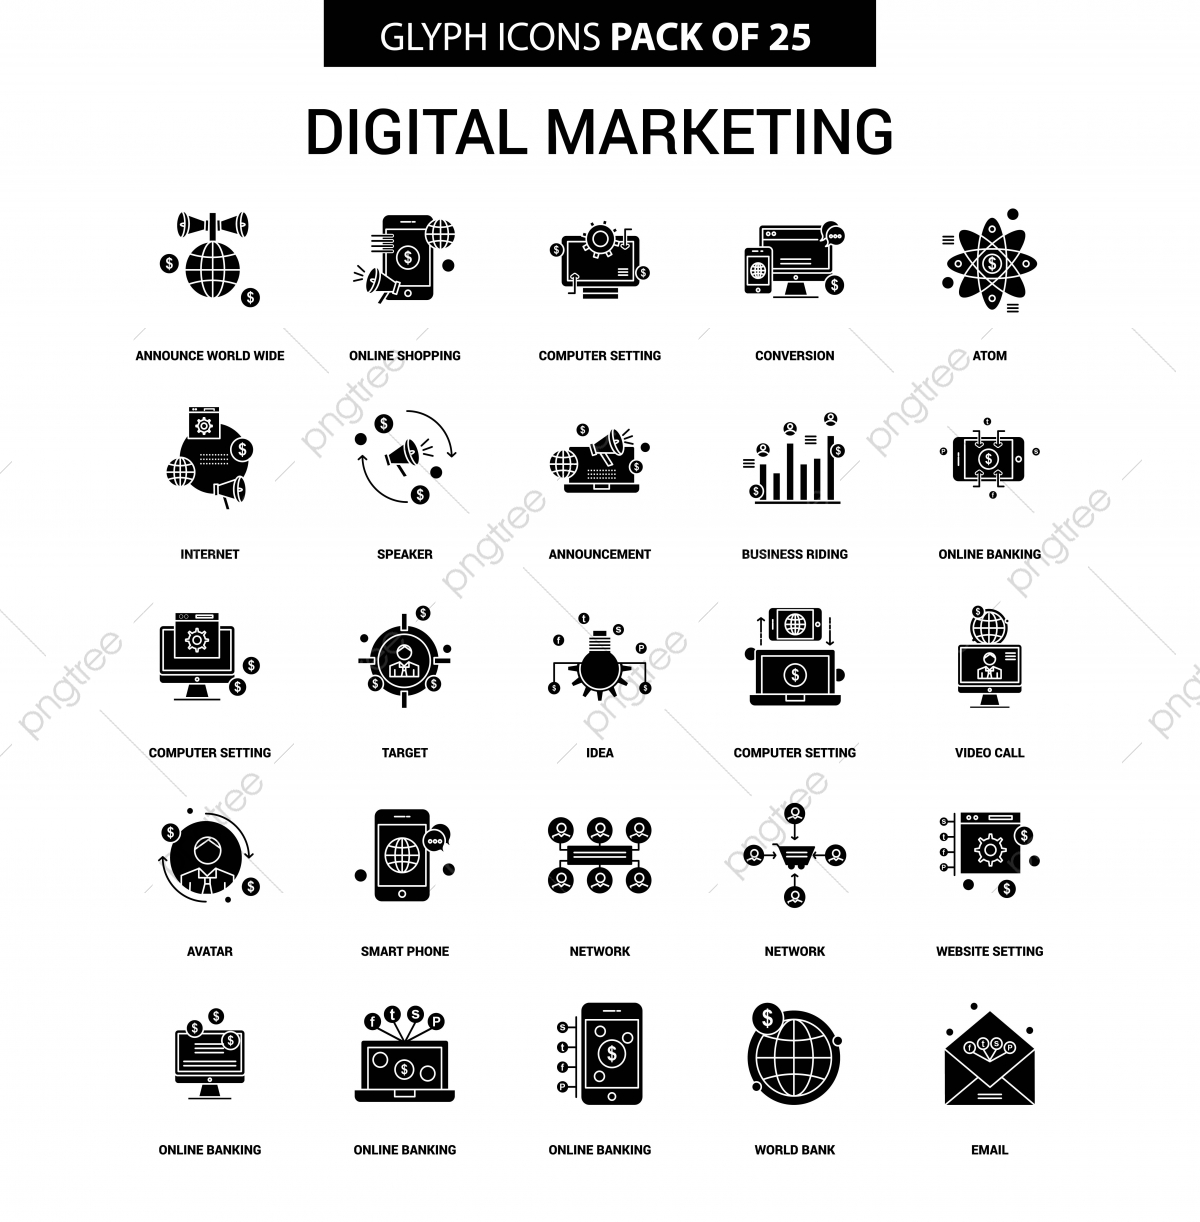 digital marketing glyph vector icon set digital icons marketing icons announce world wide png and vector with transparent background for free download https pngtree com freepng digital marketing glyph vector icon set 3753983 html